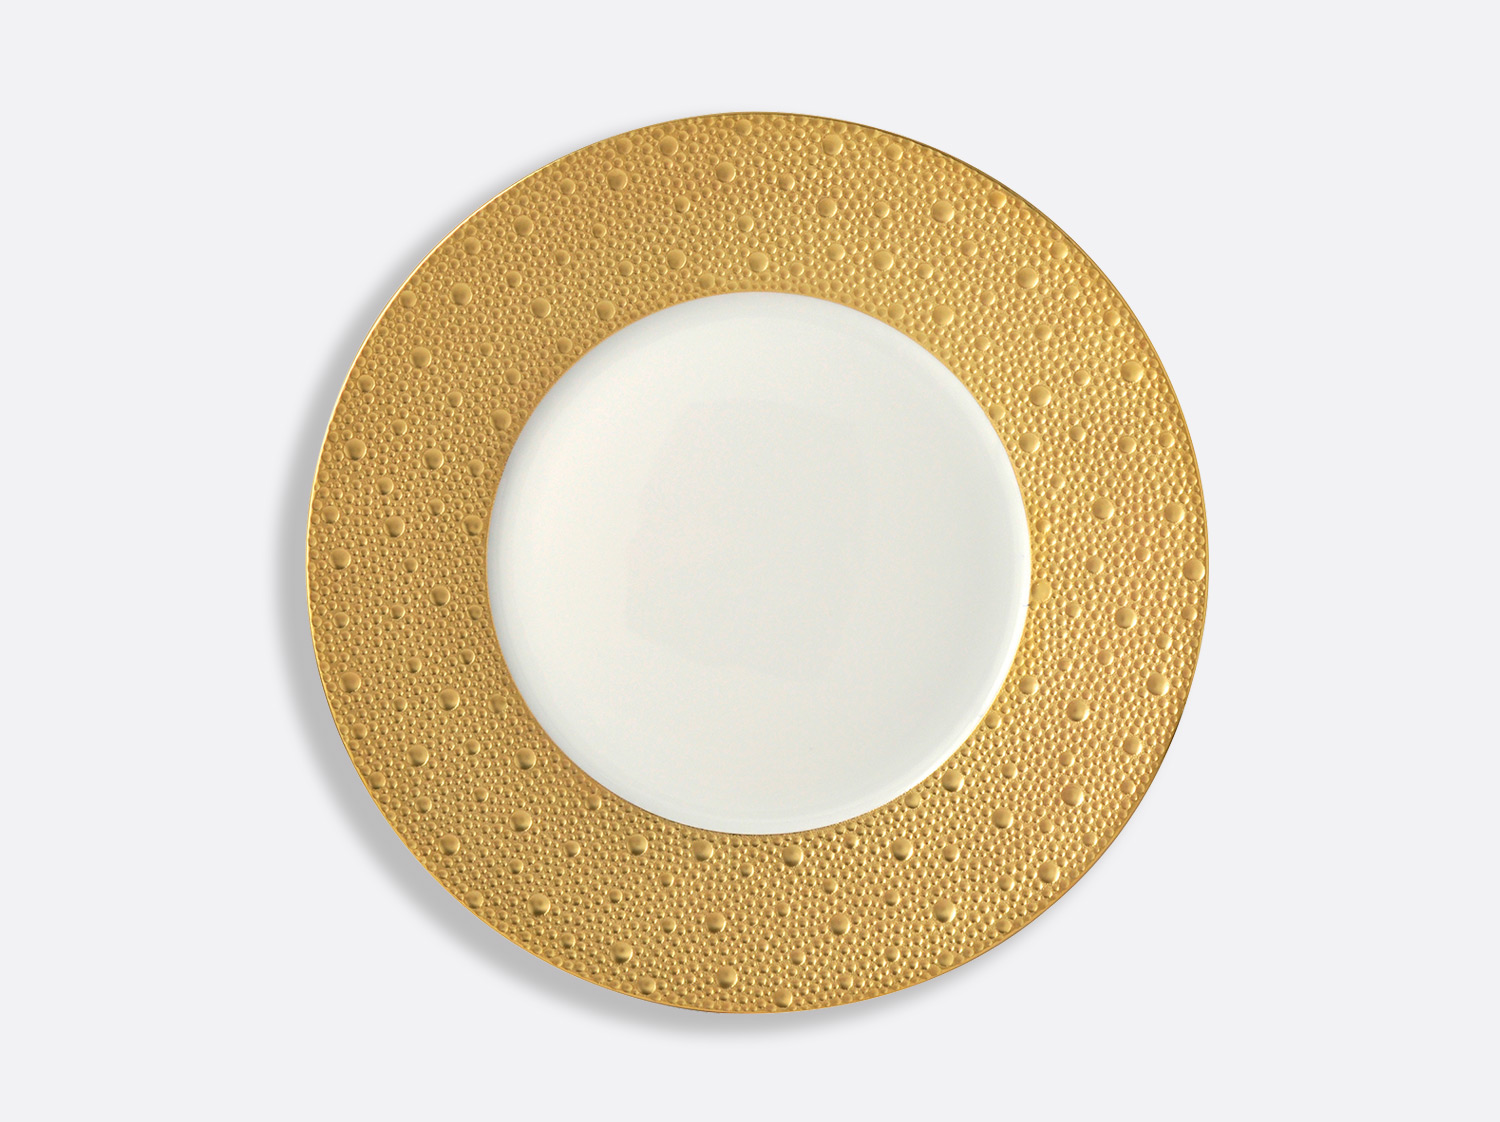 China Plate 10.5'' of the collection Ecume gold | Bernardaud